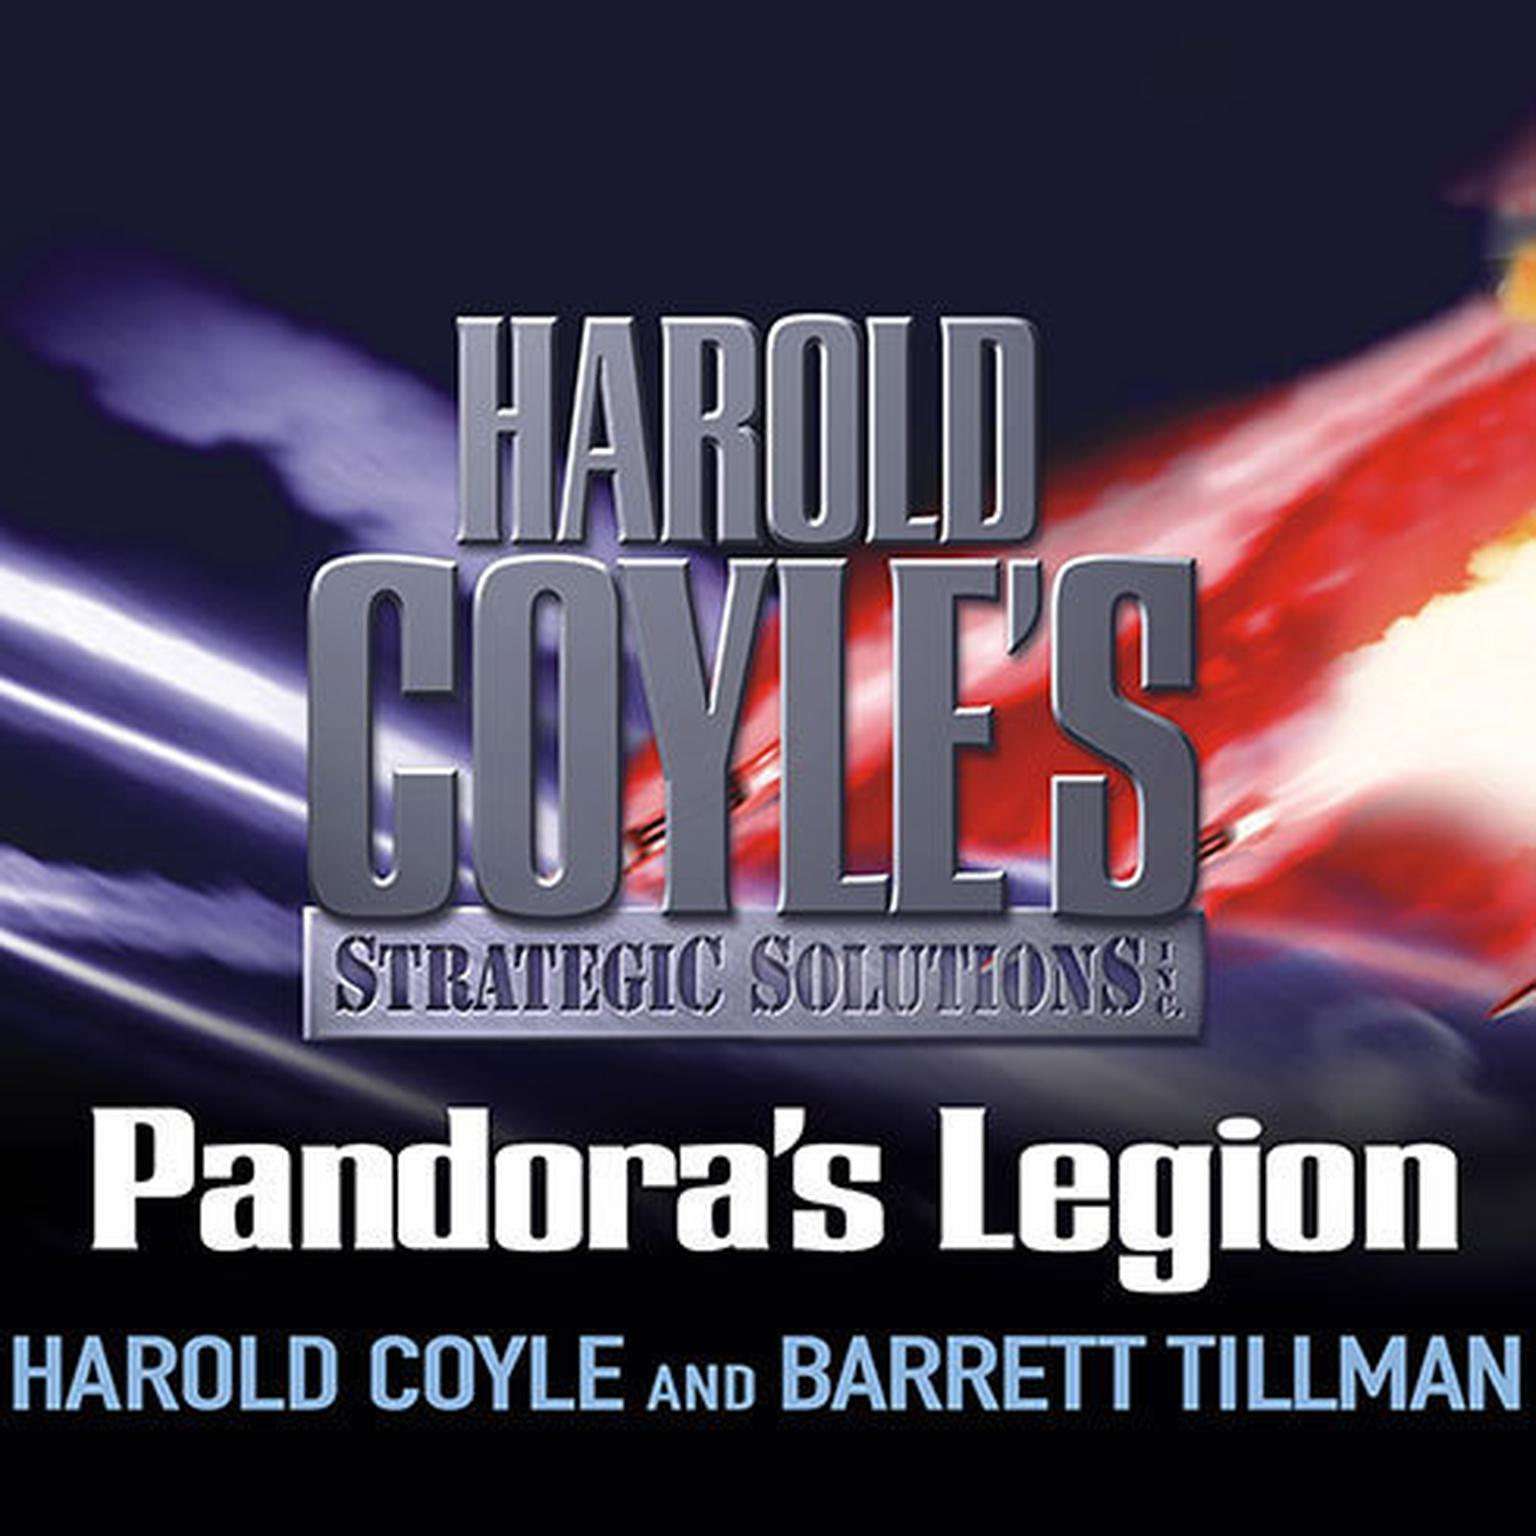 Printable Pandora's Legion: Harold Coyle's Strategic Solutions, Inc. Audiobook Cover Art